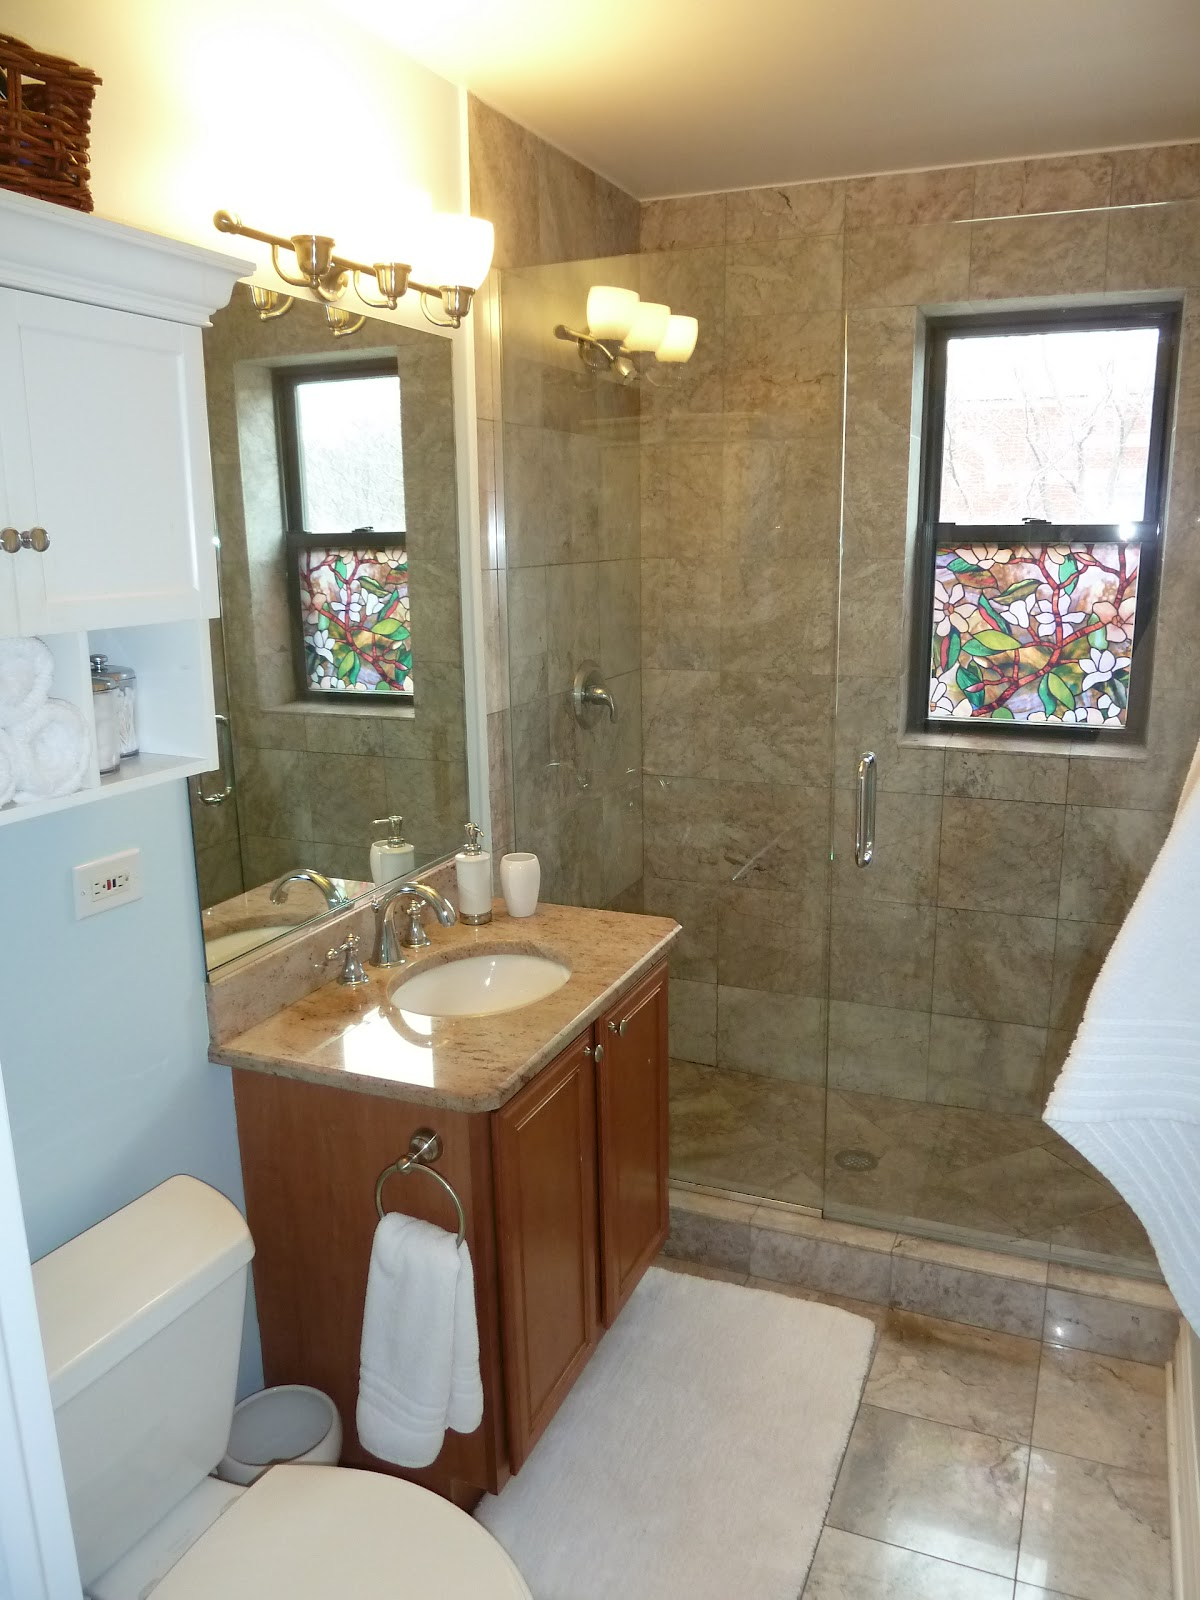 The Chicago Real Estate Local: NEW For Sale: Gorgeous two ...